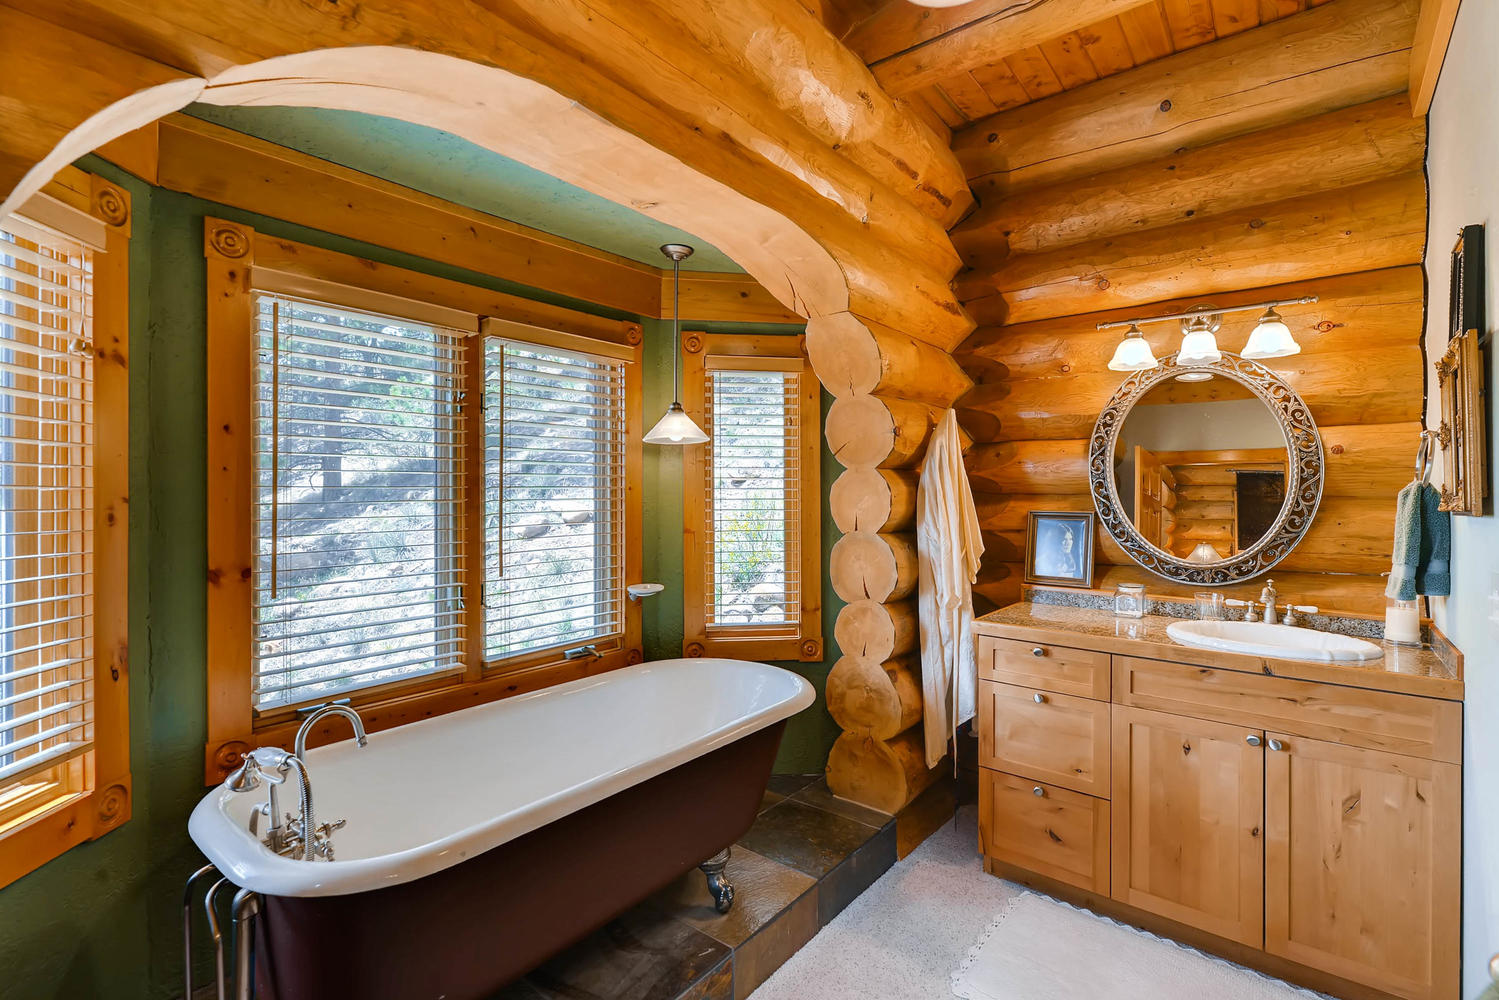 There is a claw foot tub with windows to let in lots of natural light. Soak away your troubles!